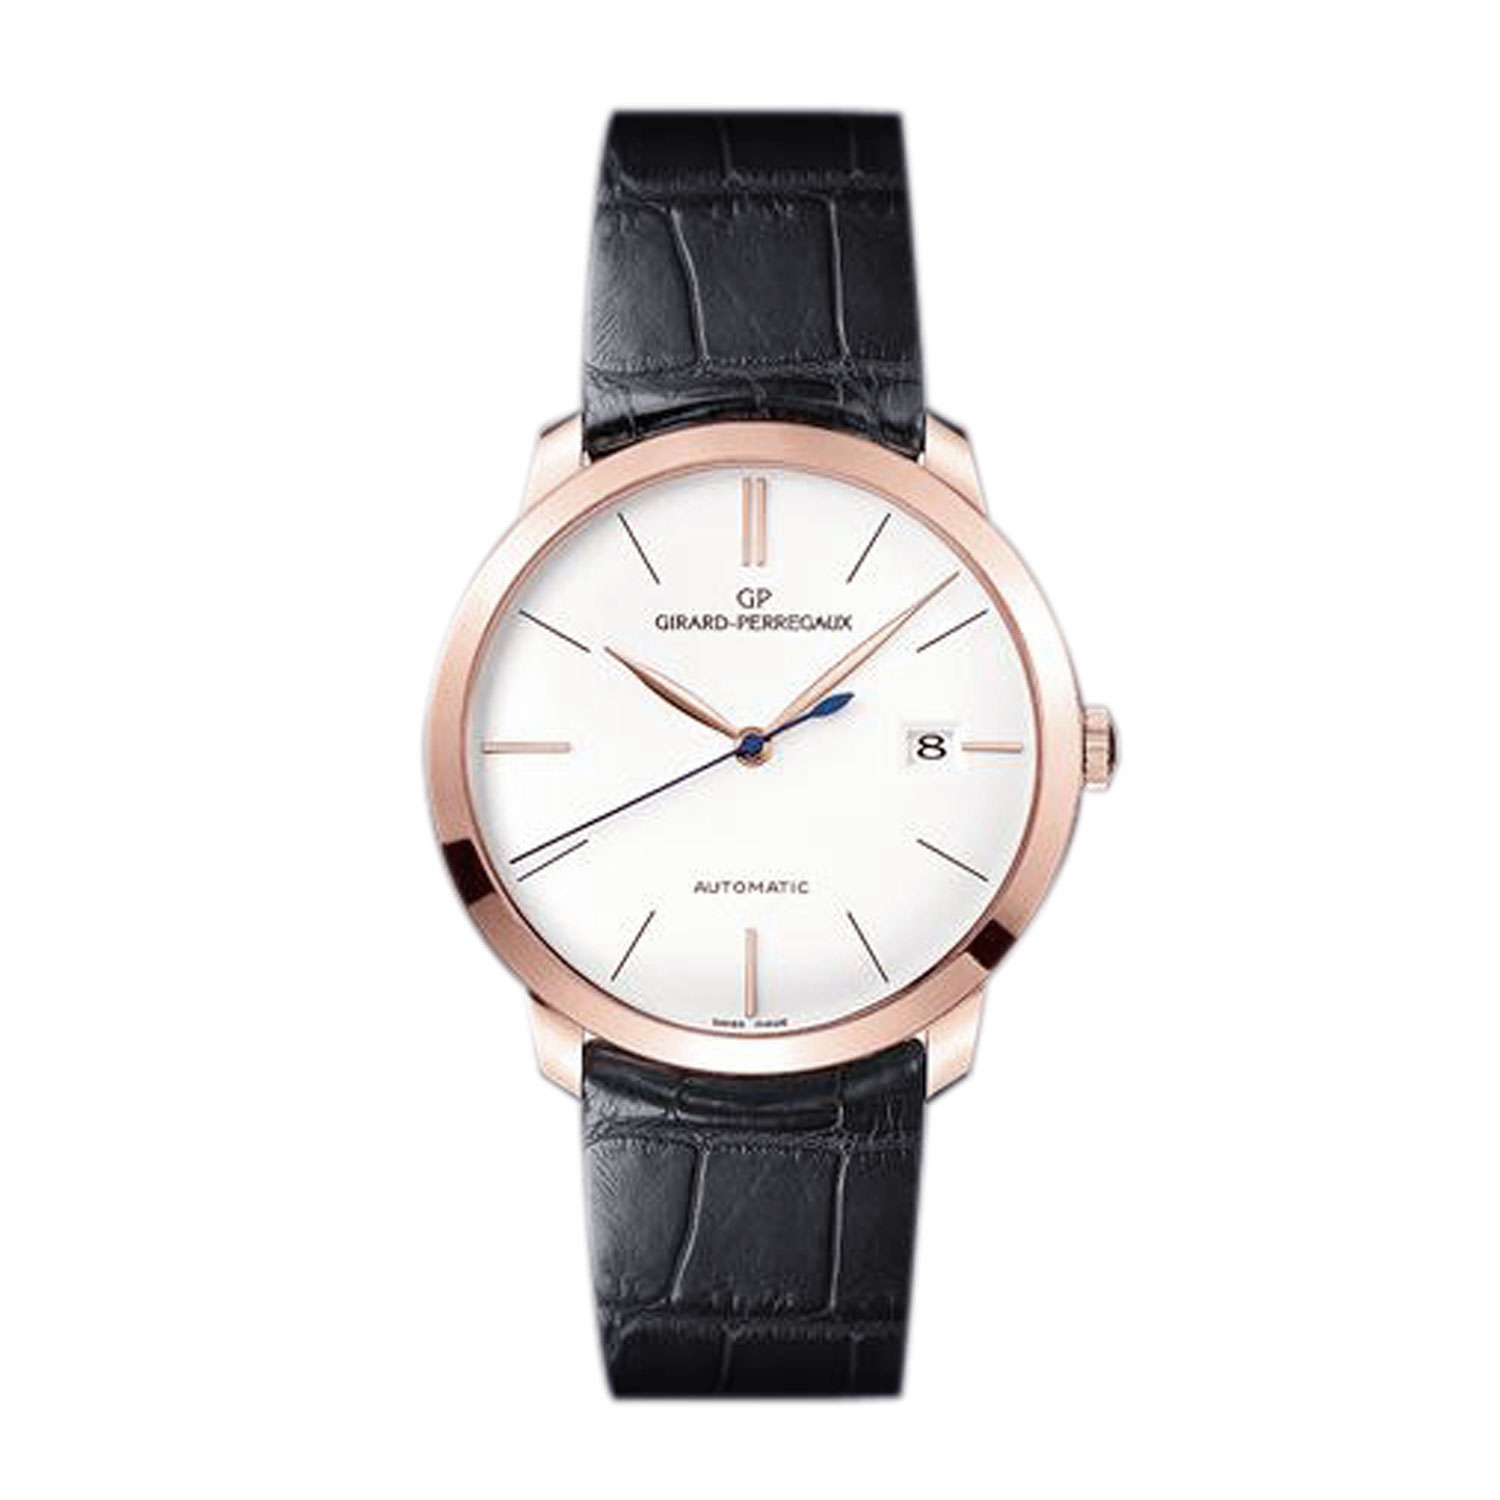 The Iconic GIRARD-PERREGAUX 1966 Collection With Steel Were Unvelied